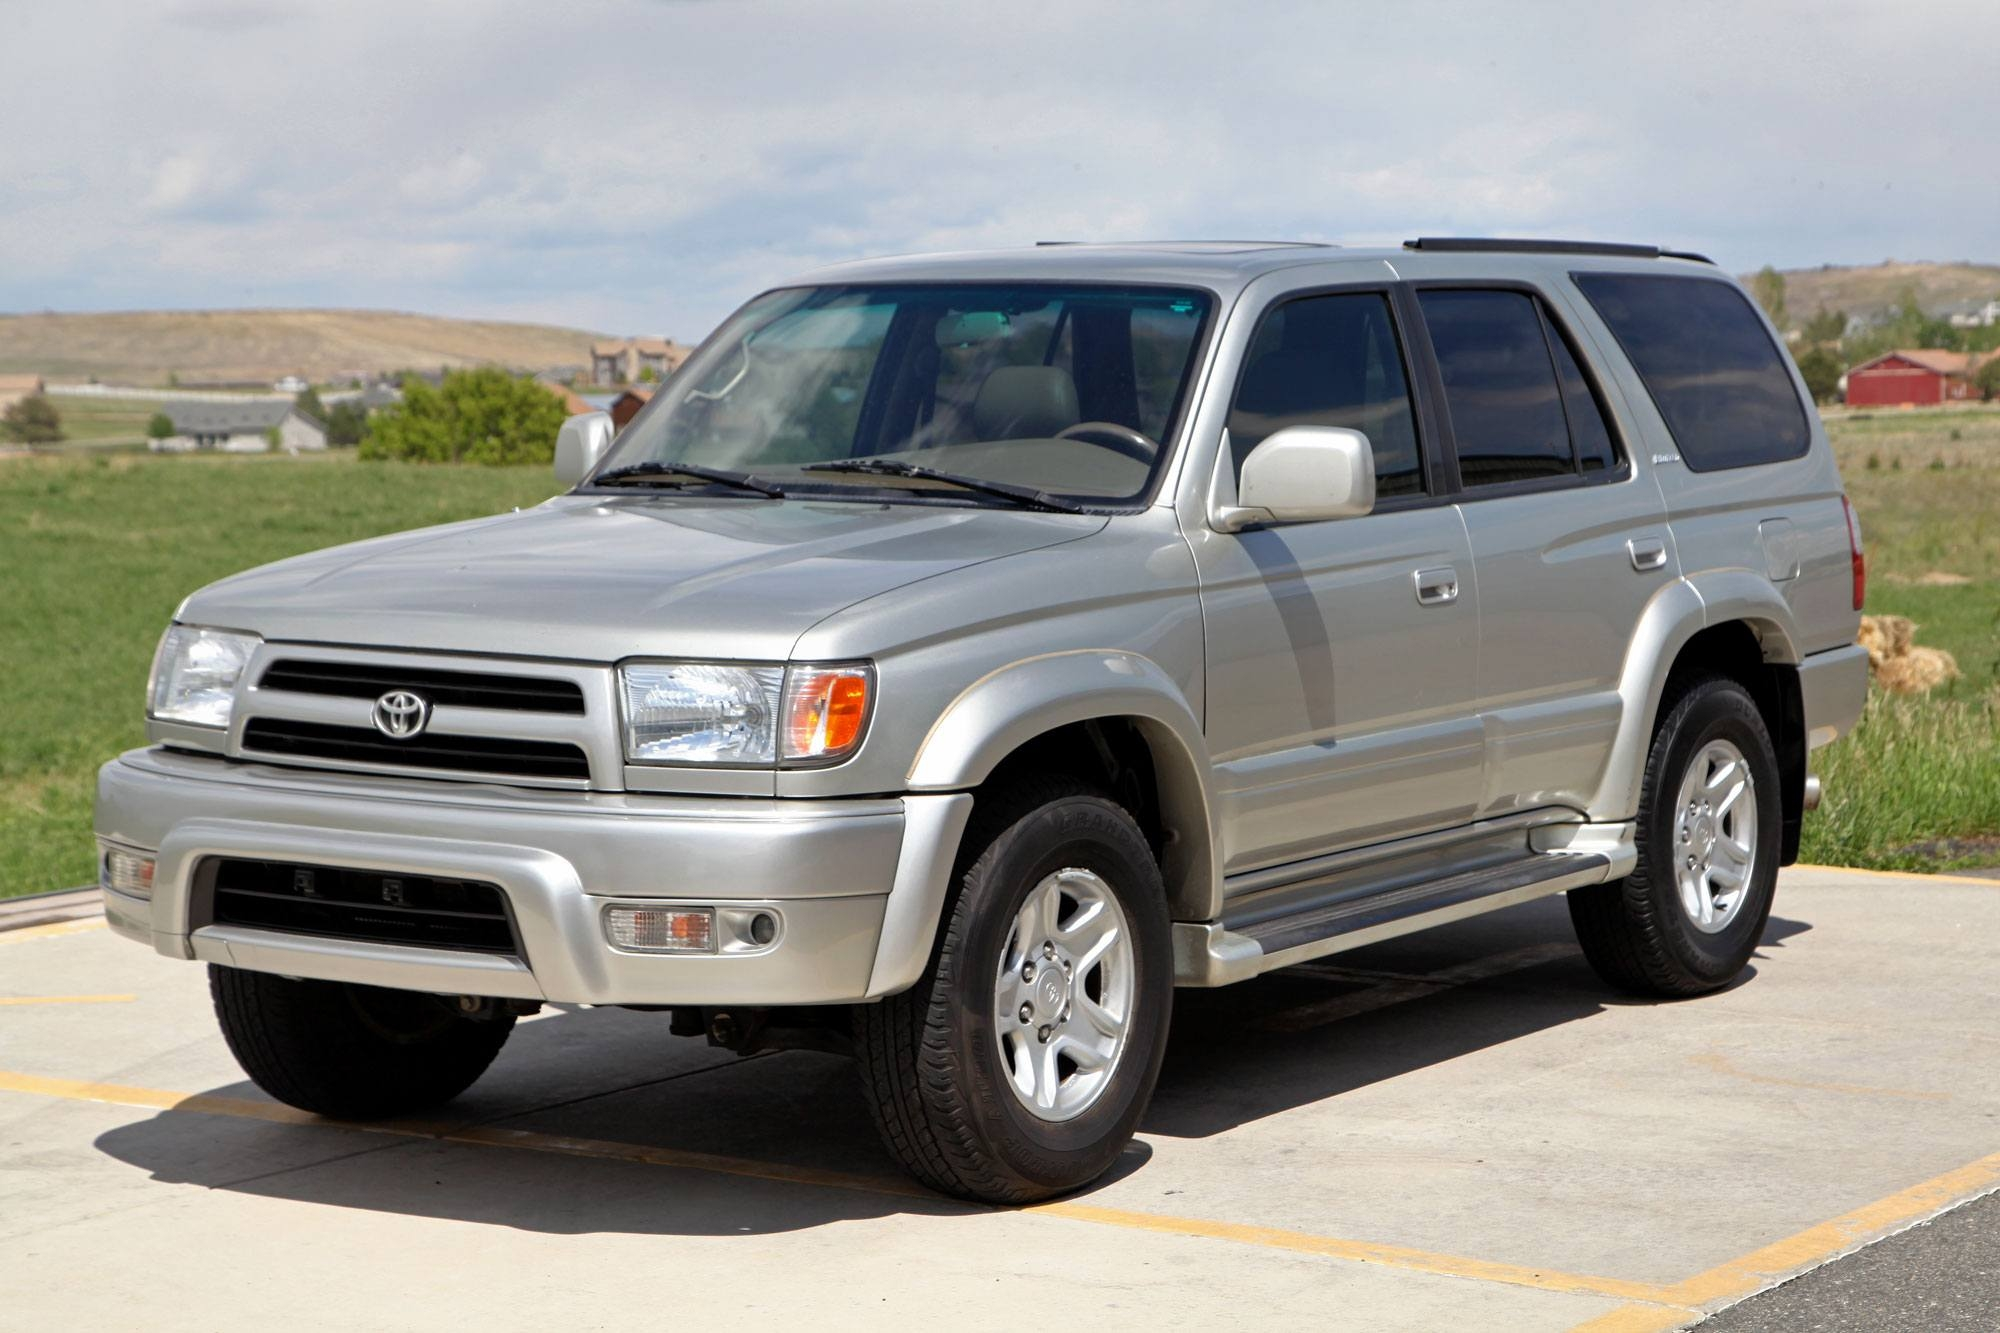 2000 Toyota 4Runner Limited 4X4 V6 TRD Supercharger